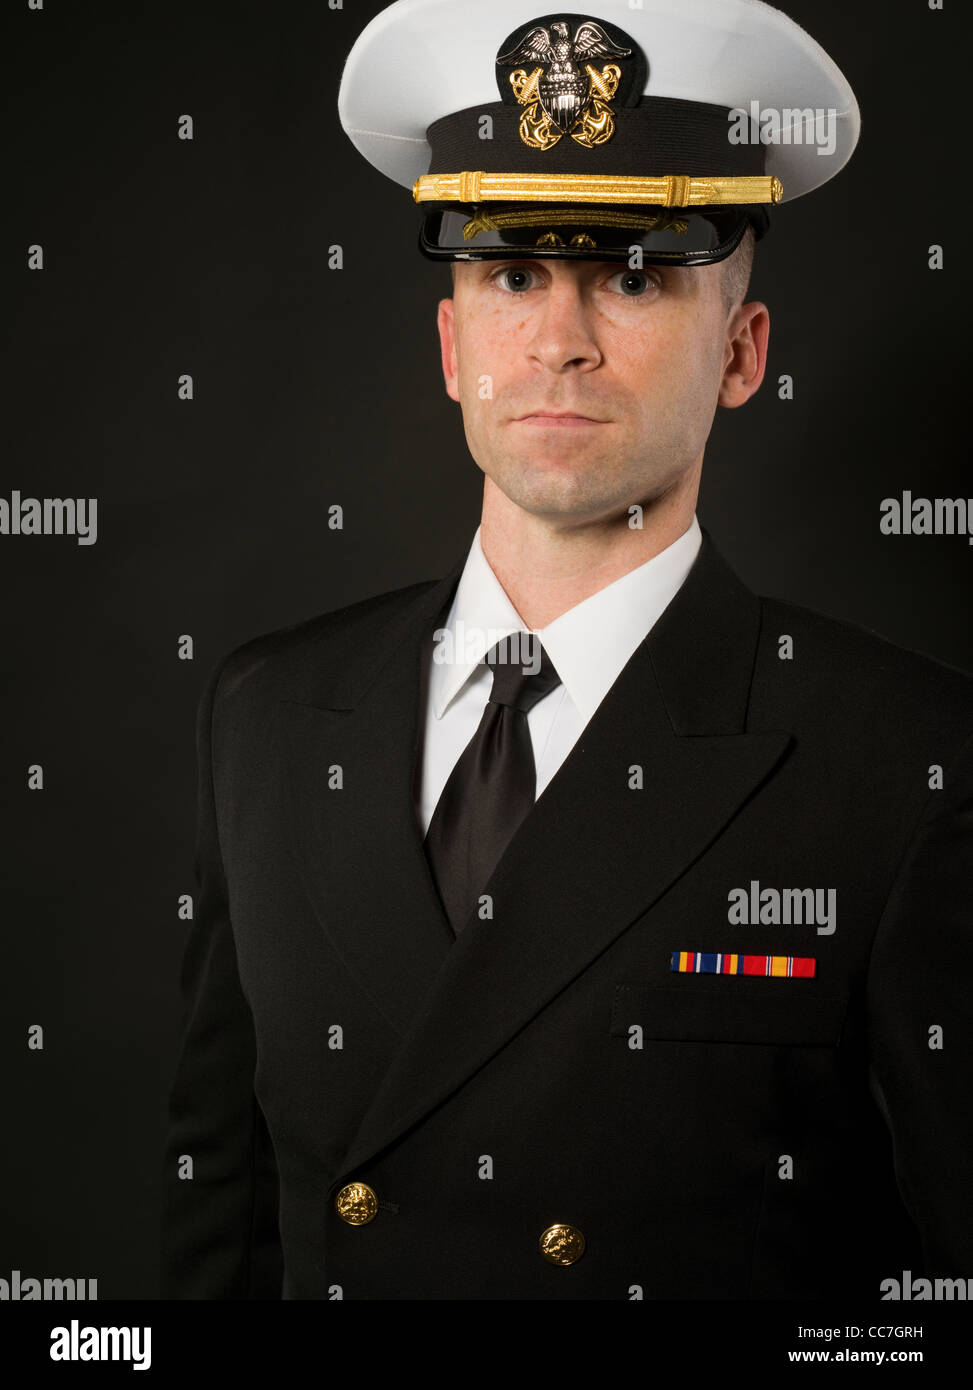 united states navy officer in service dress blues uniform